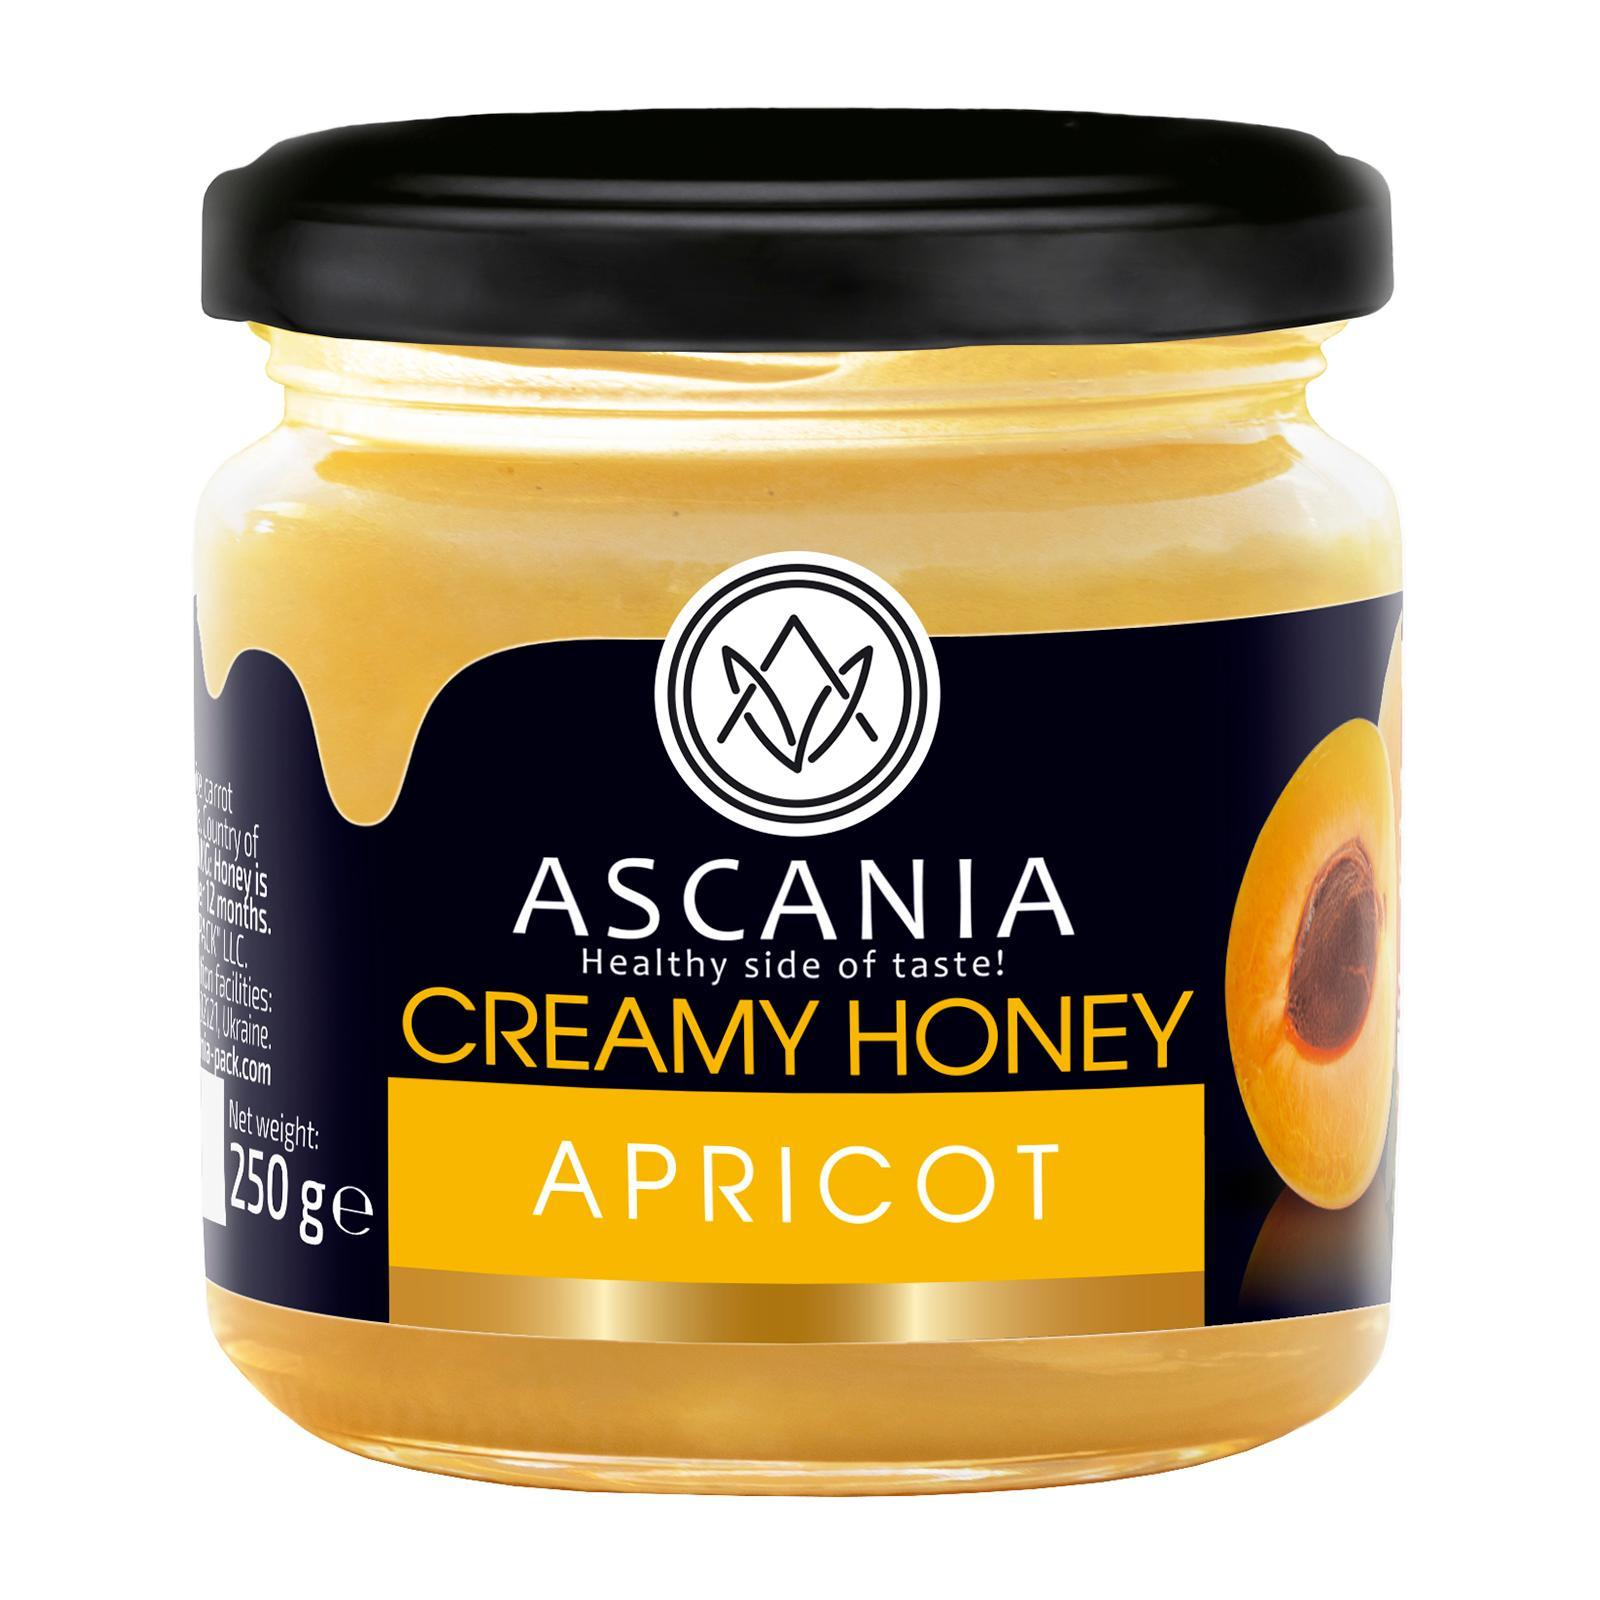 Ascania Creamy Honey With APRICOT